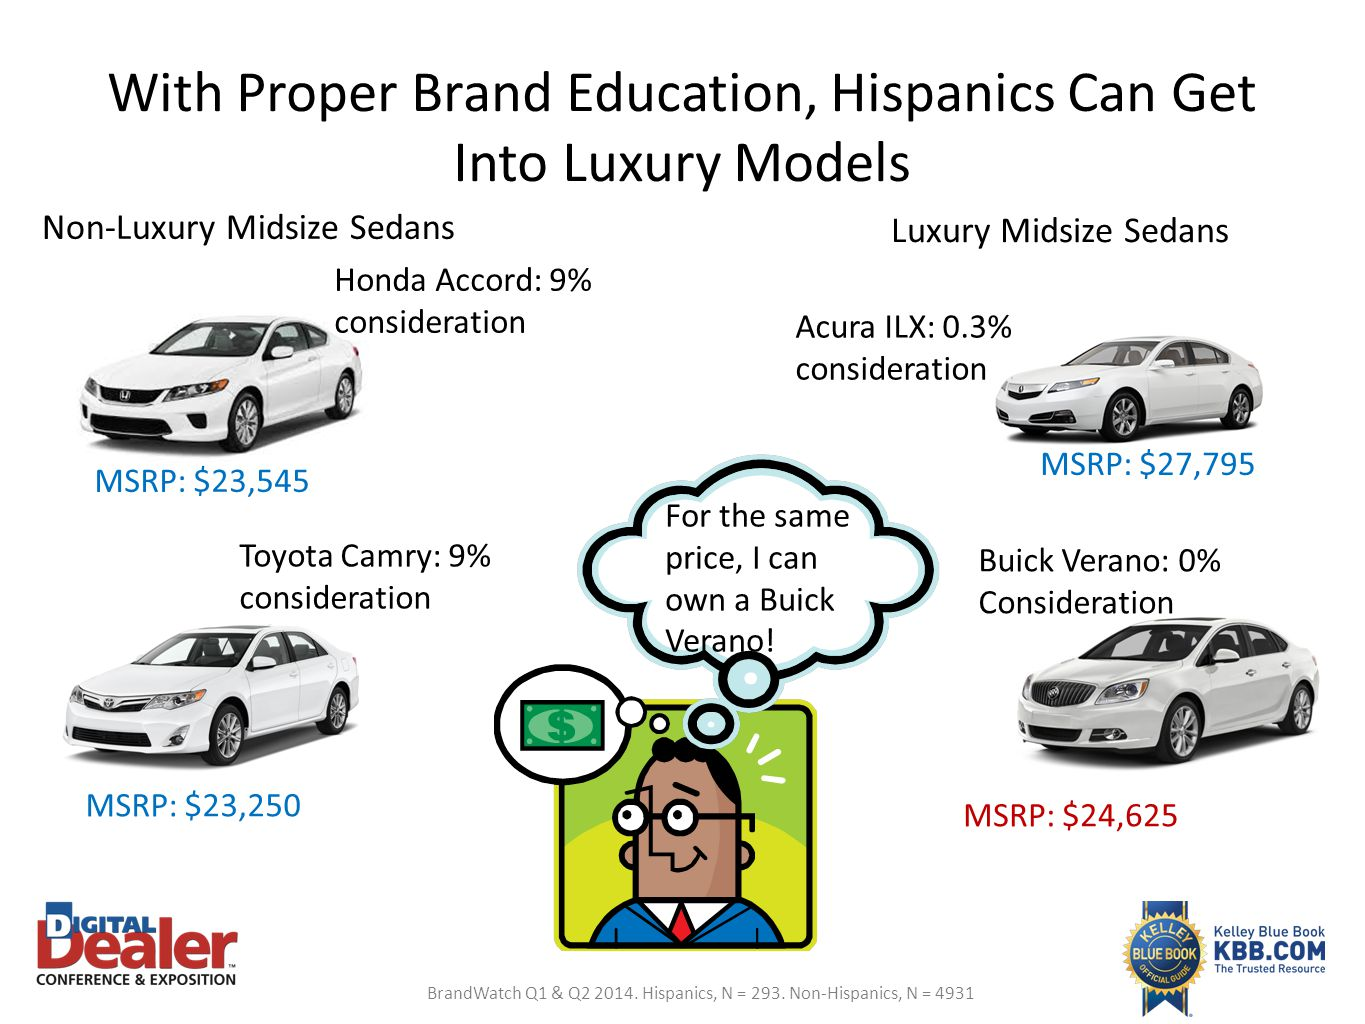 With Proper Brand Education, Hispanics Can Get Into Luxury Models